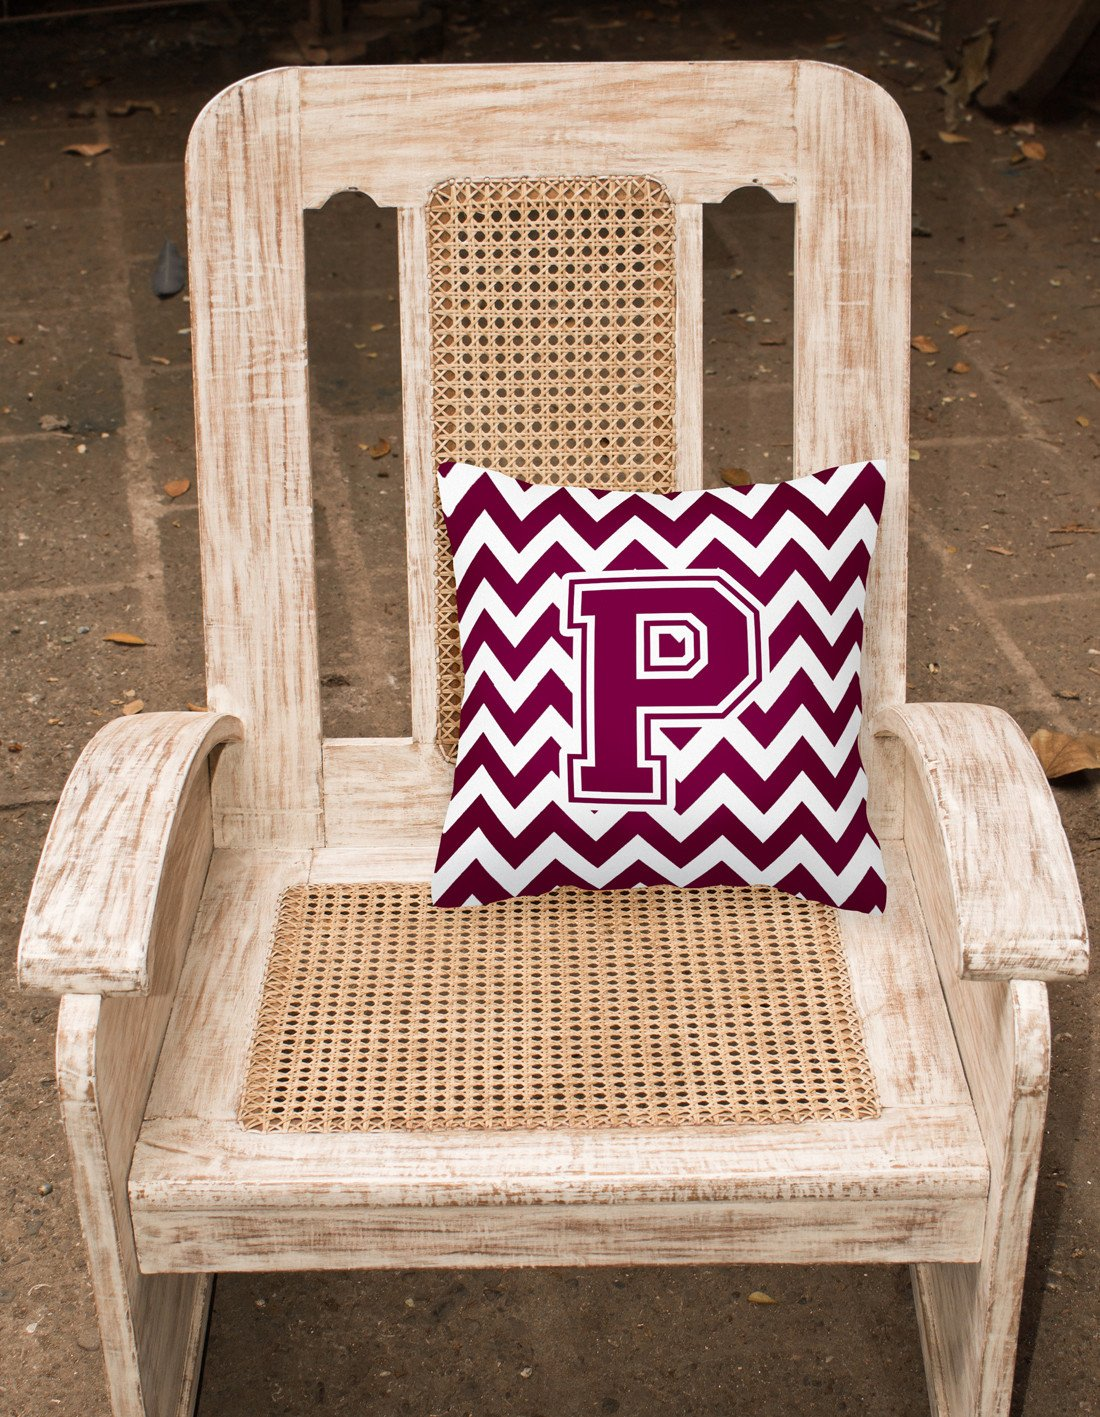 Letter P Chevron Maroon and White  Fabric Decorative Pillow CJ1051-PPW1414 by Caroline's Treasures